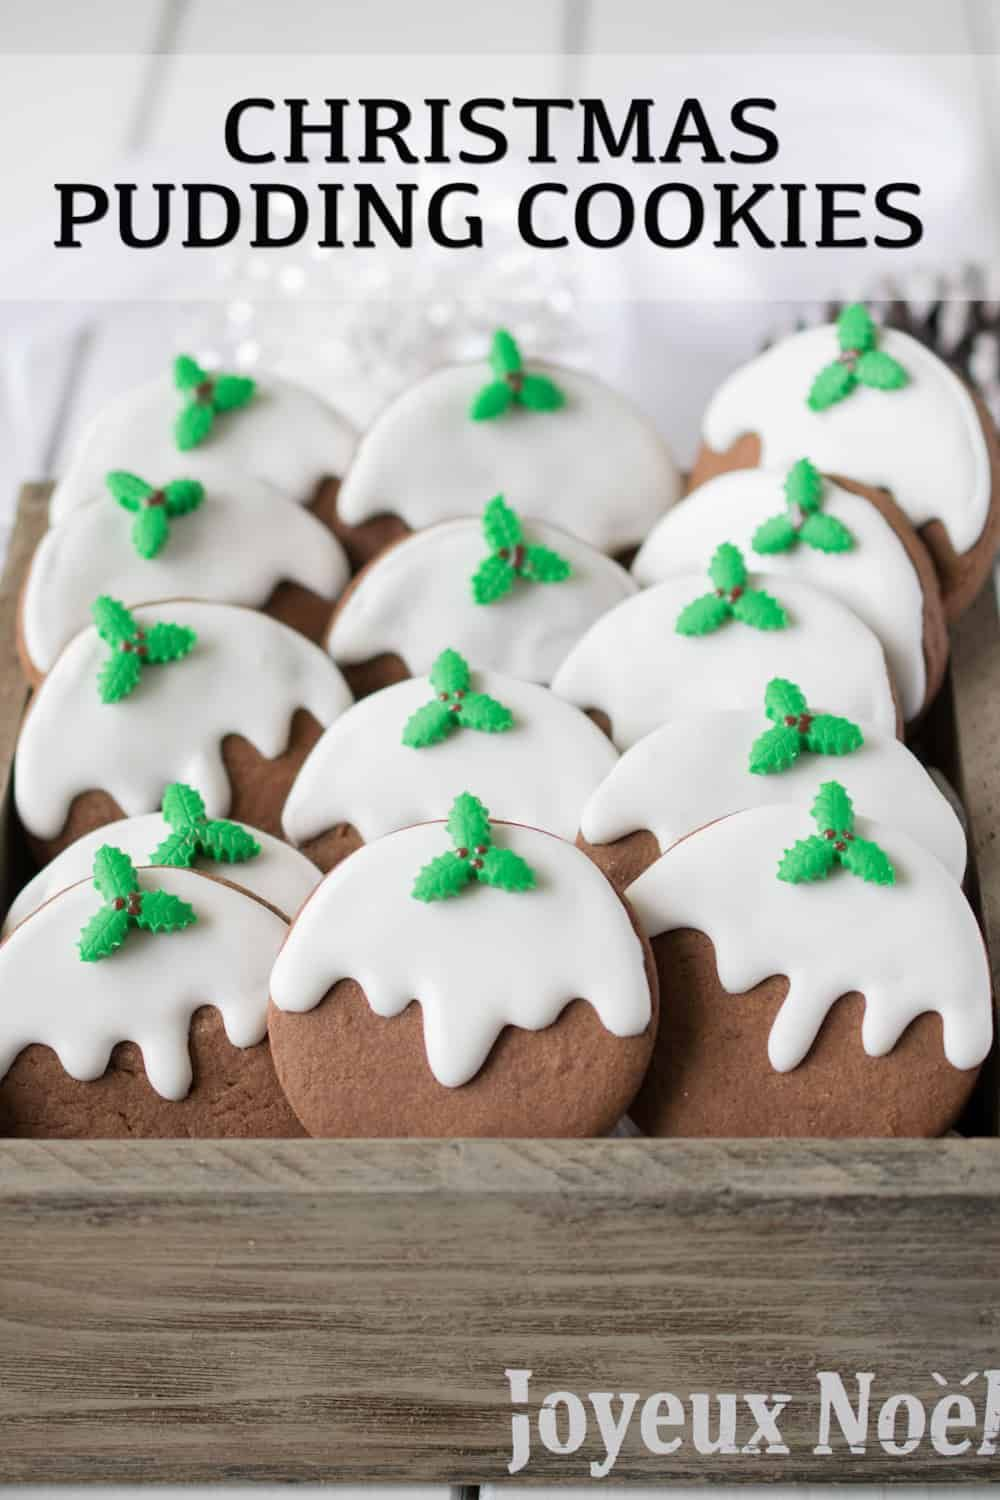 A Christmas Pudding Still A Tradition In England In 2020? Christmas Pudding Cookies | Recipe in 2020 | Christmas pudding